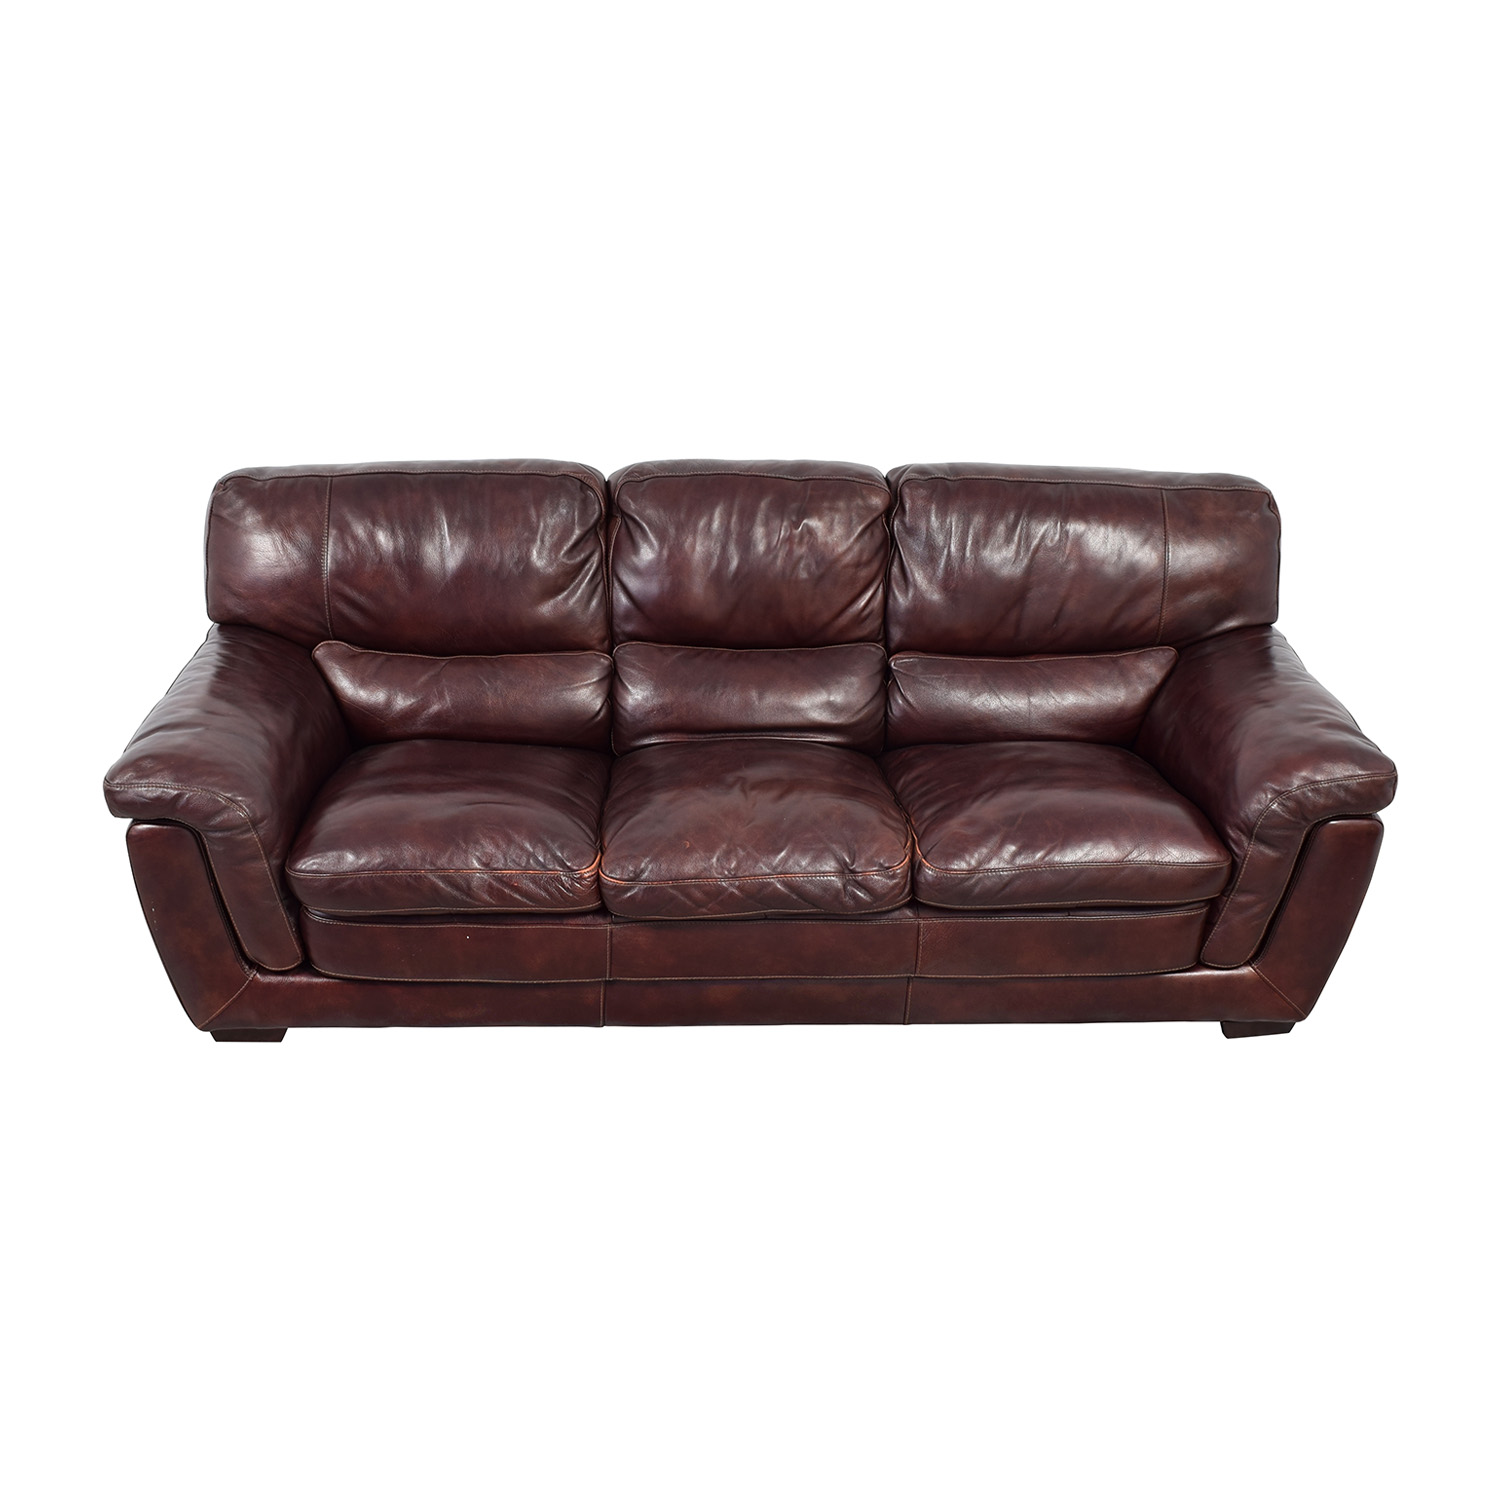 Raymour & Flanigan Raymour & Flanigan Burgundy Leather Three-Cushion Sofa used